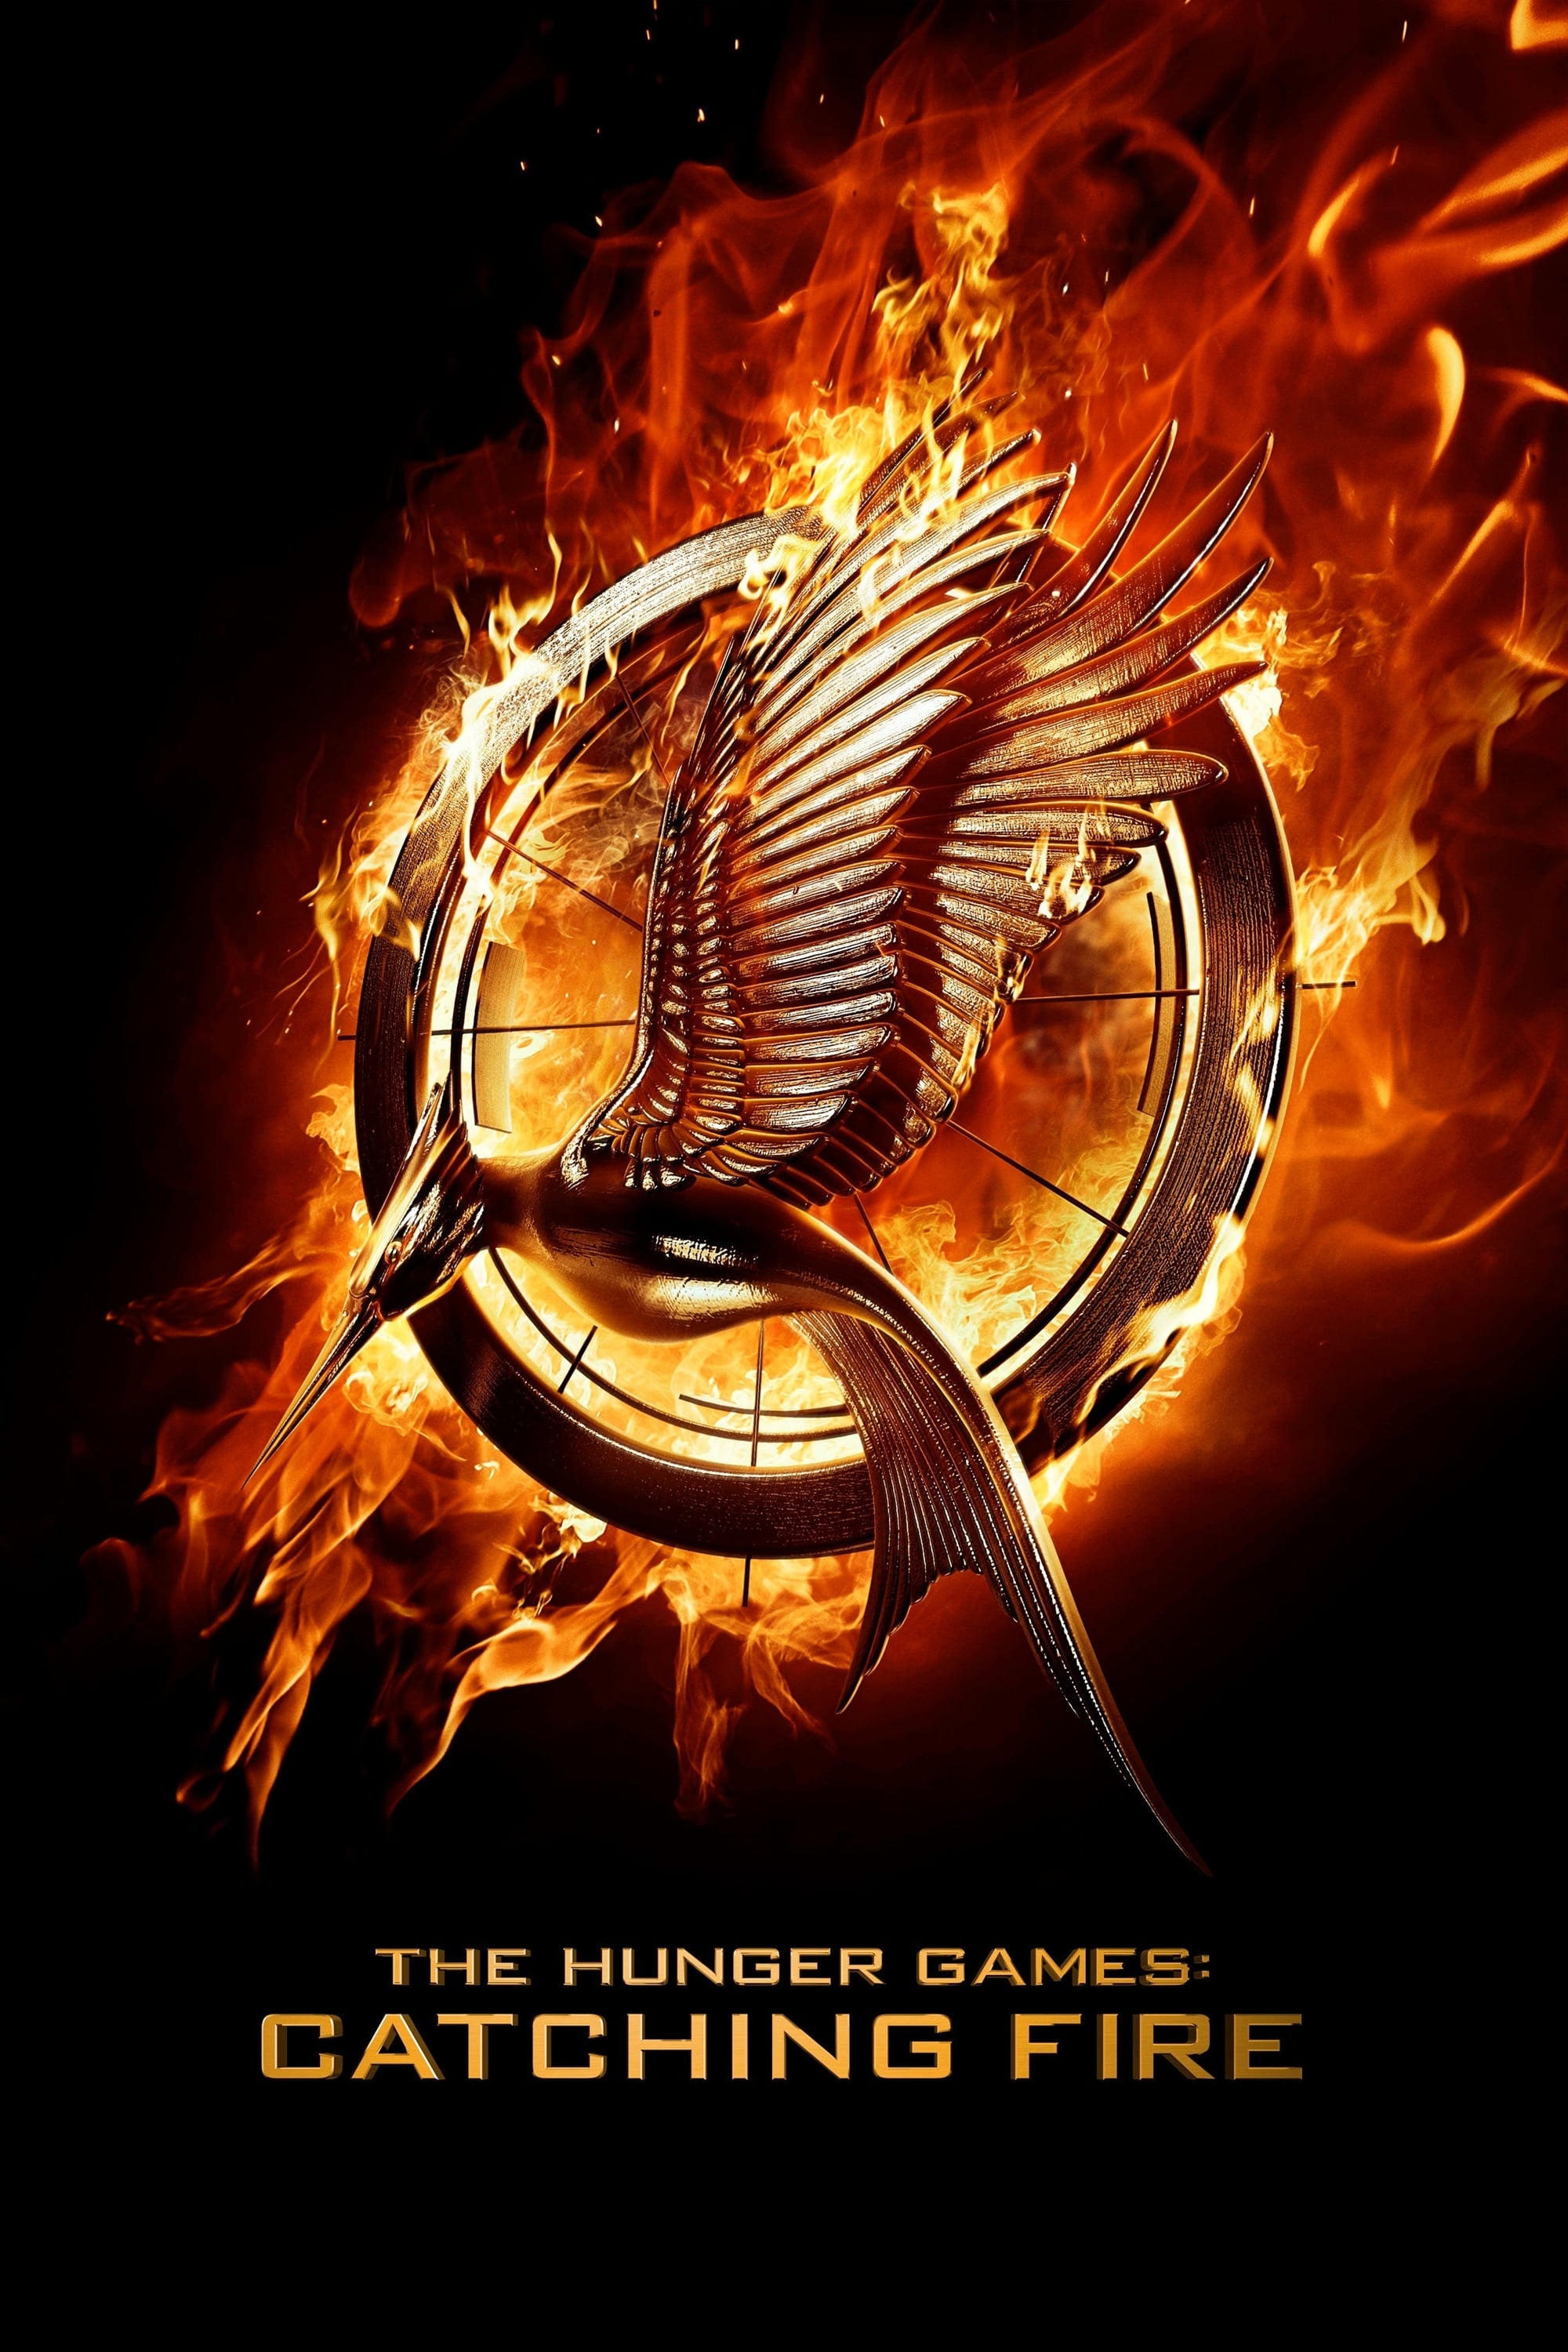 Watch The Hunger Games: Catching Fire (2013) Full Movie ...